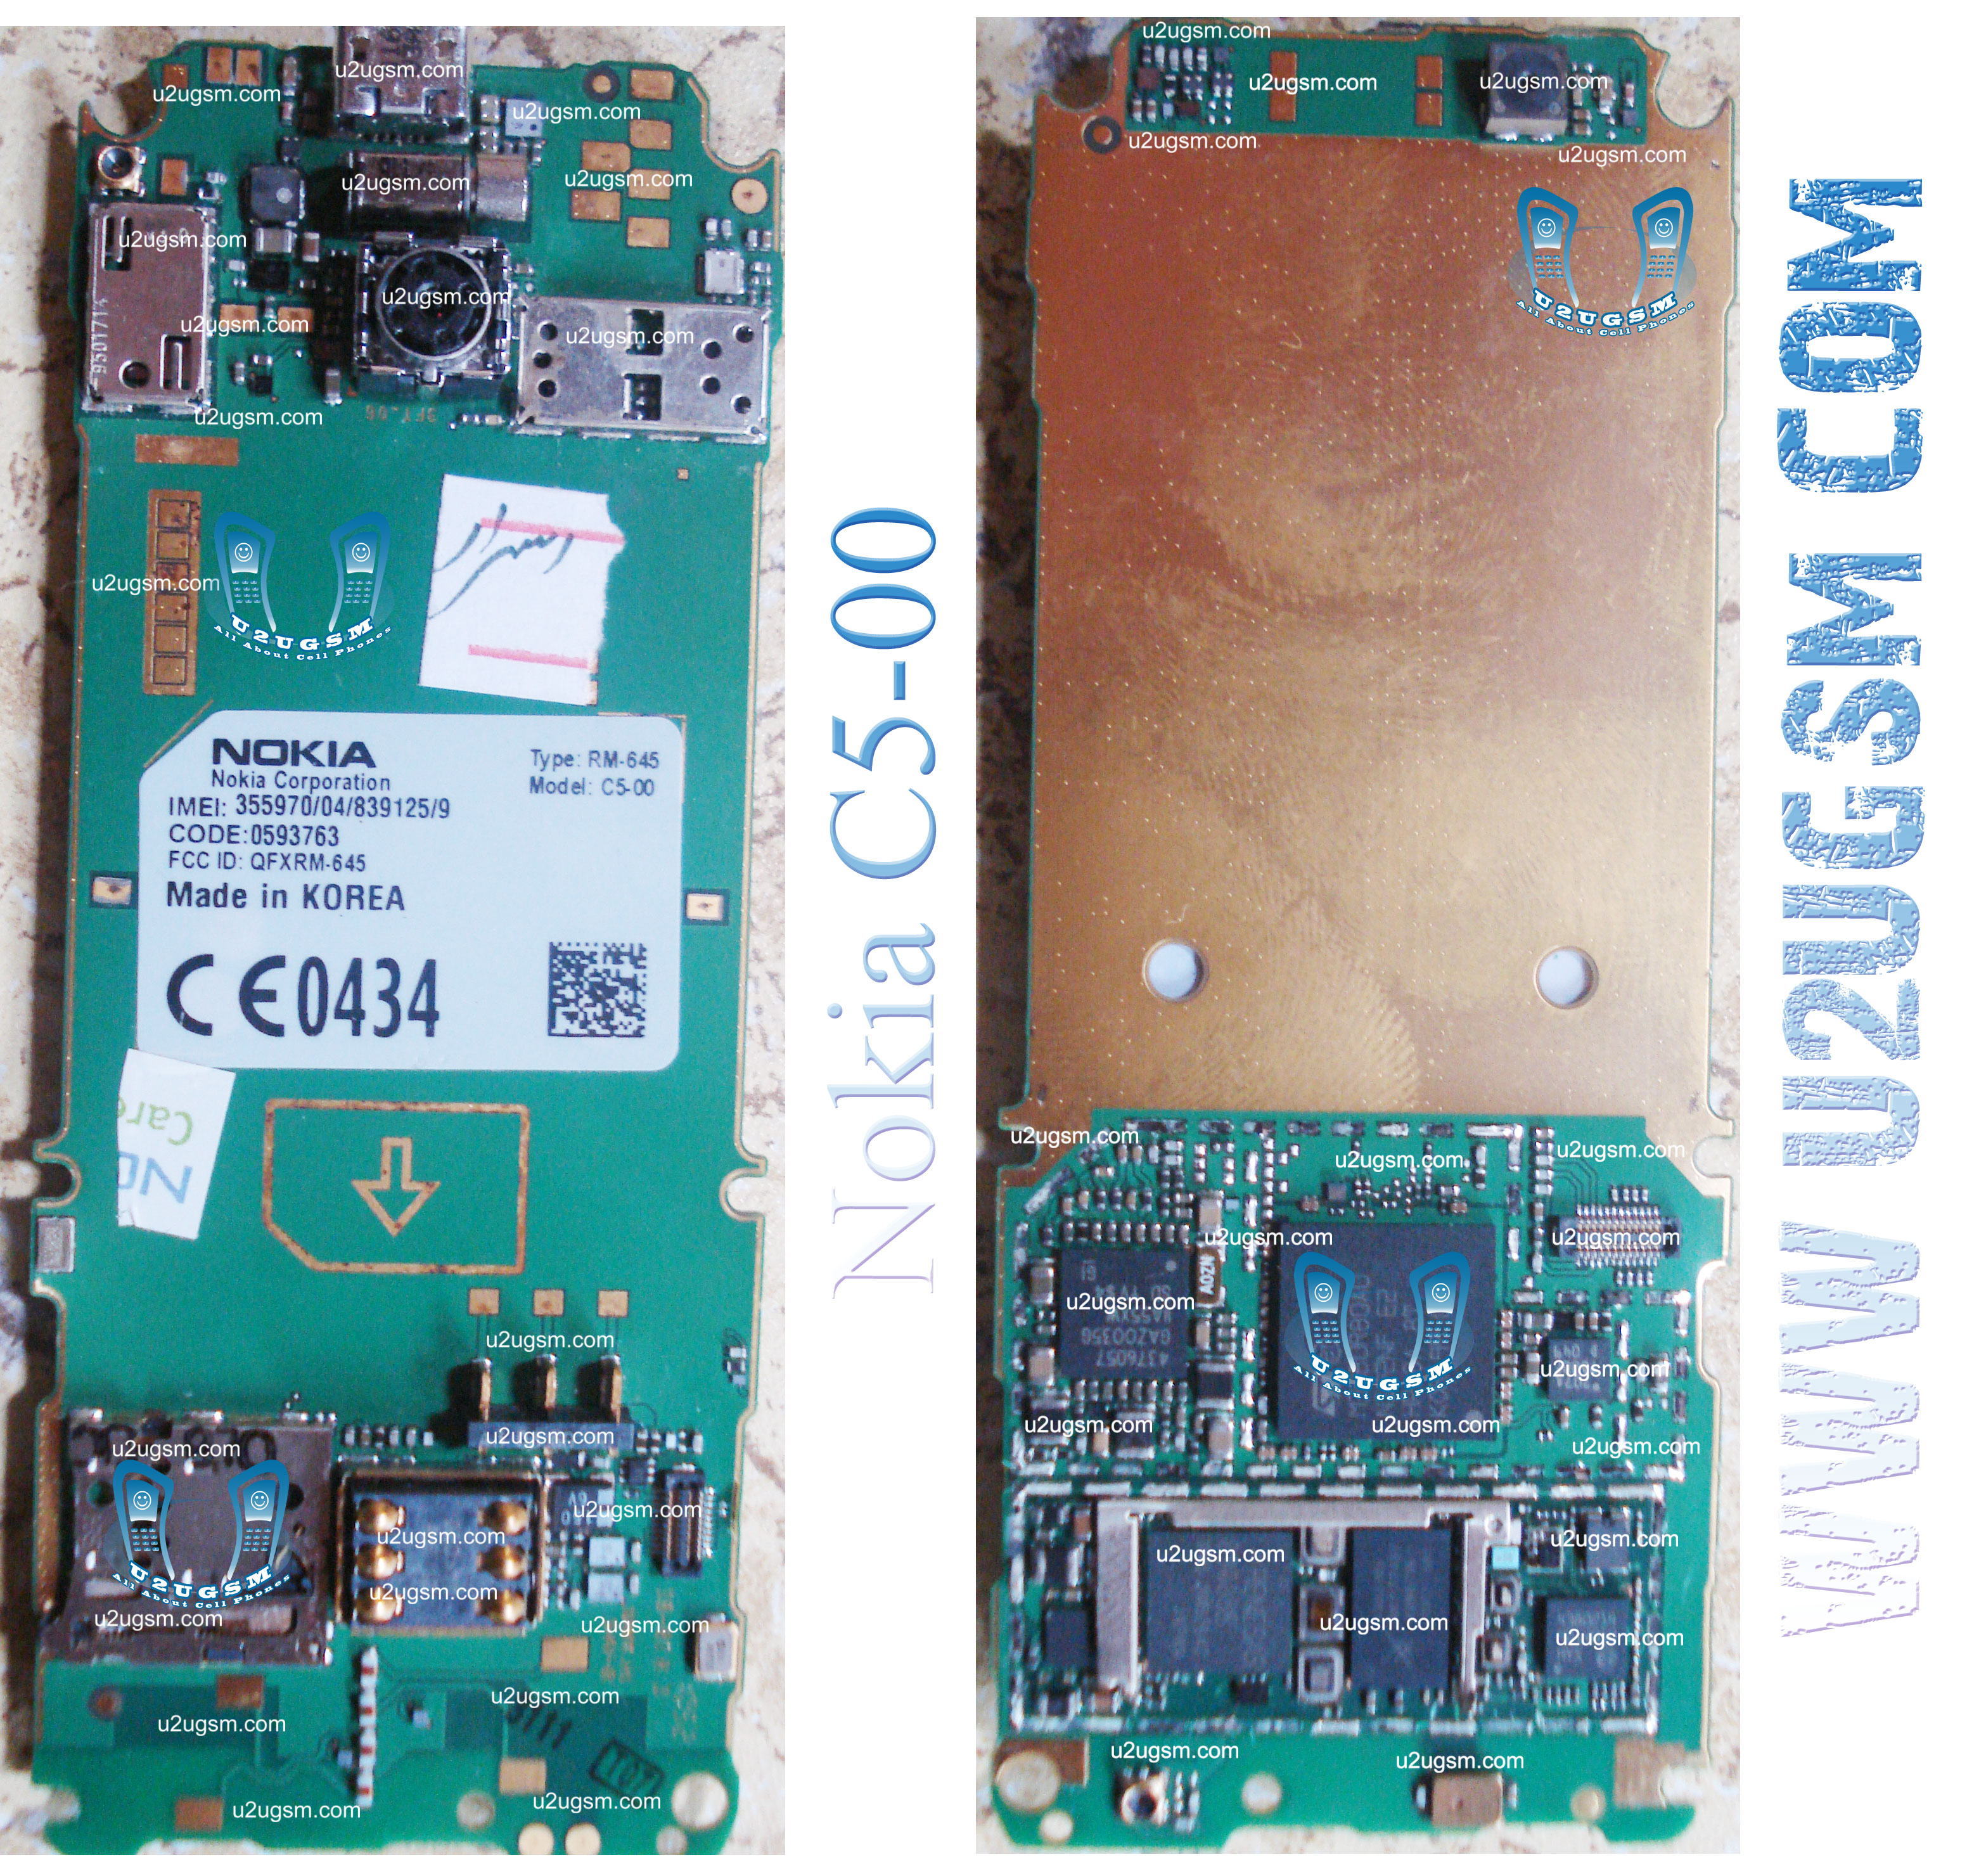 nokia c5 full pcb diagram mother board layout rh u2ugsm com Nokia 5 Nokia C6